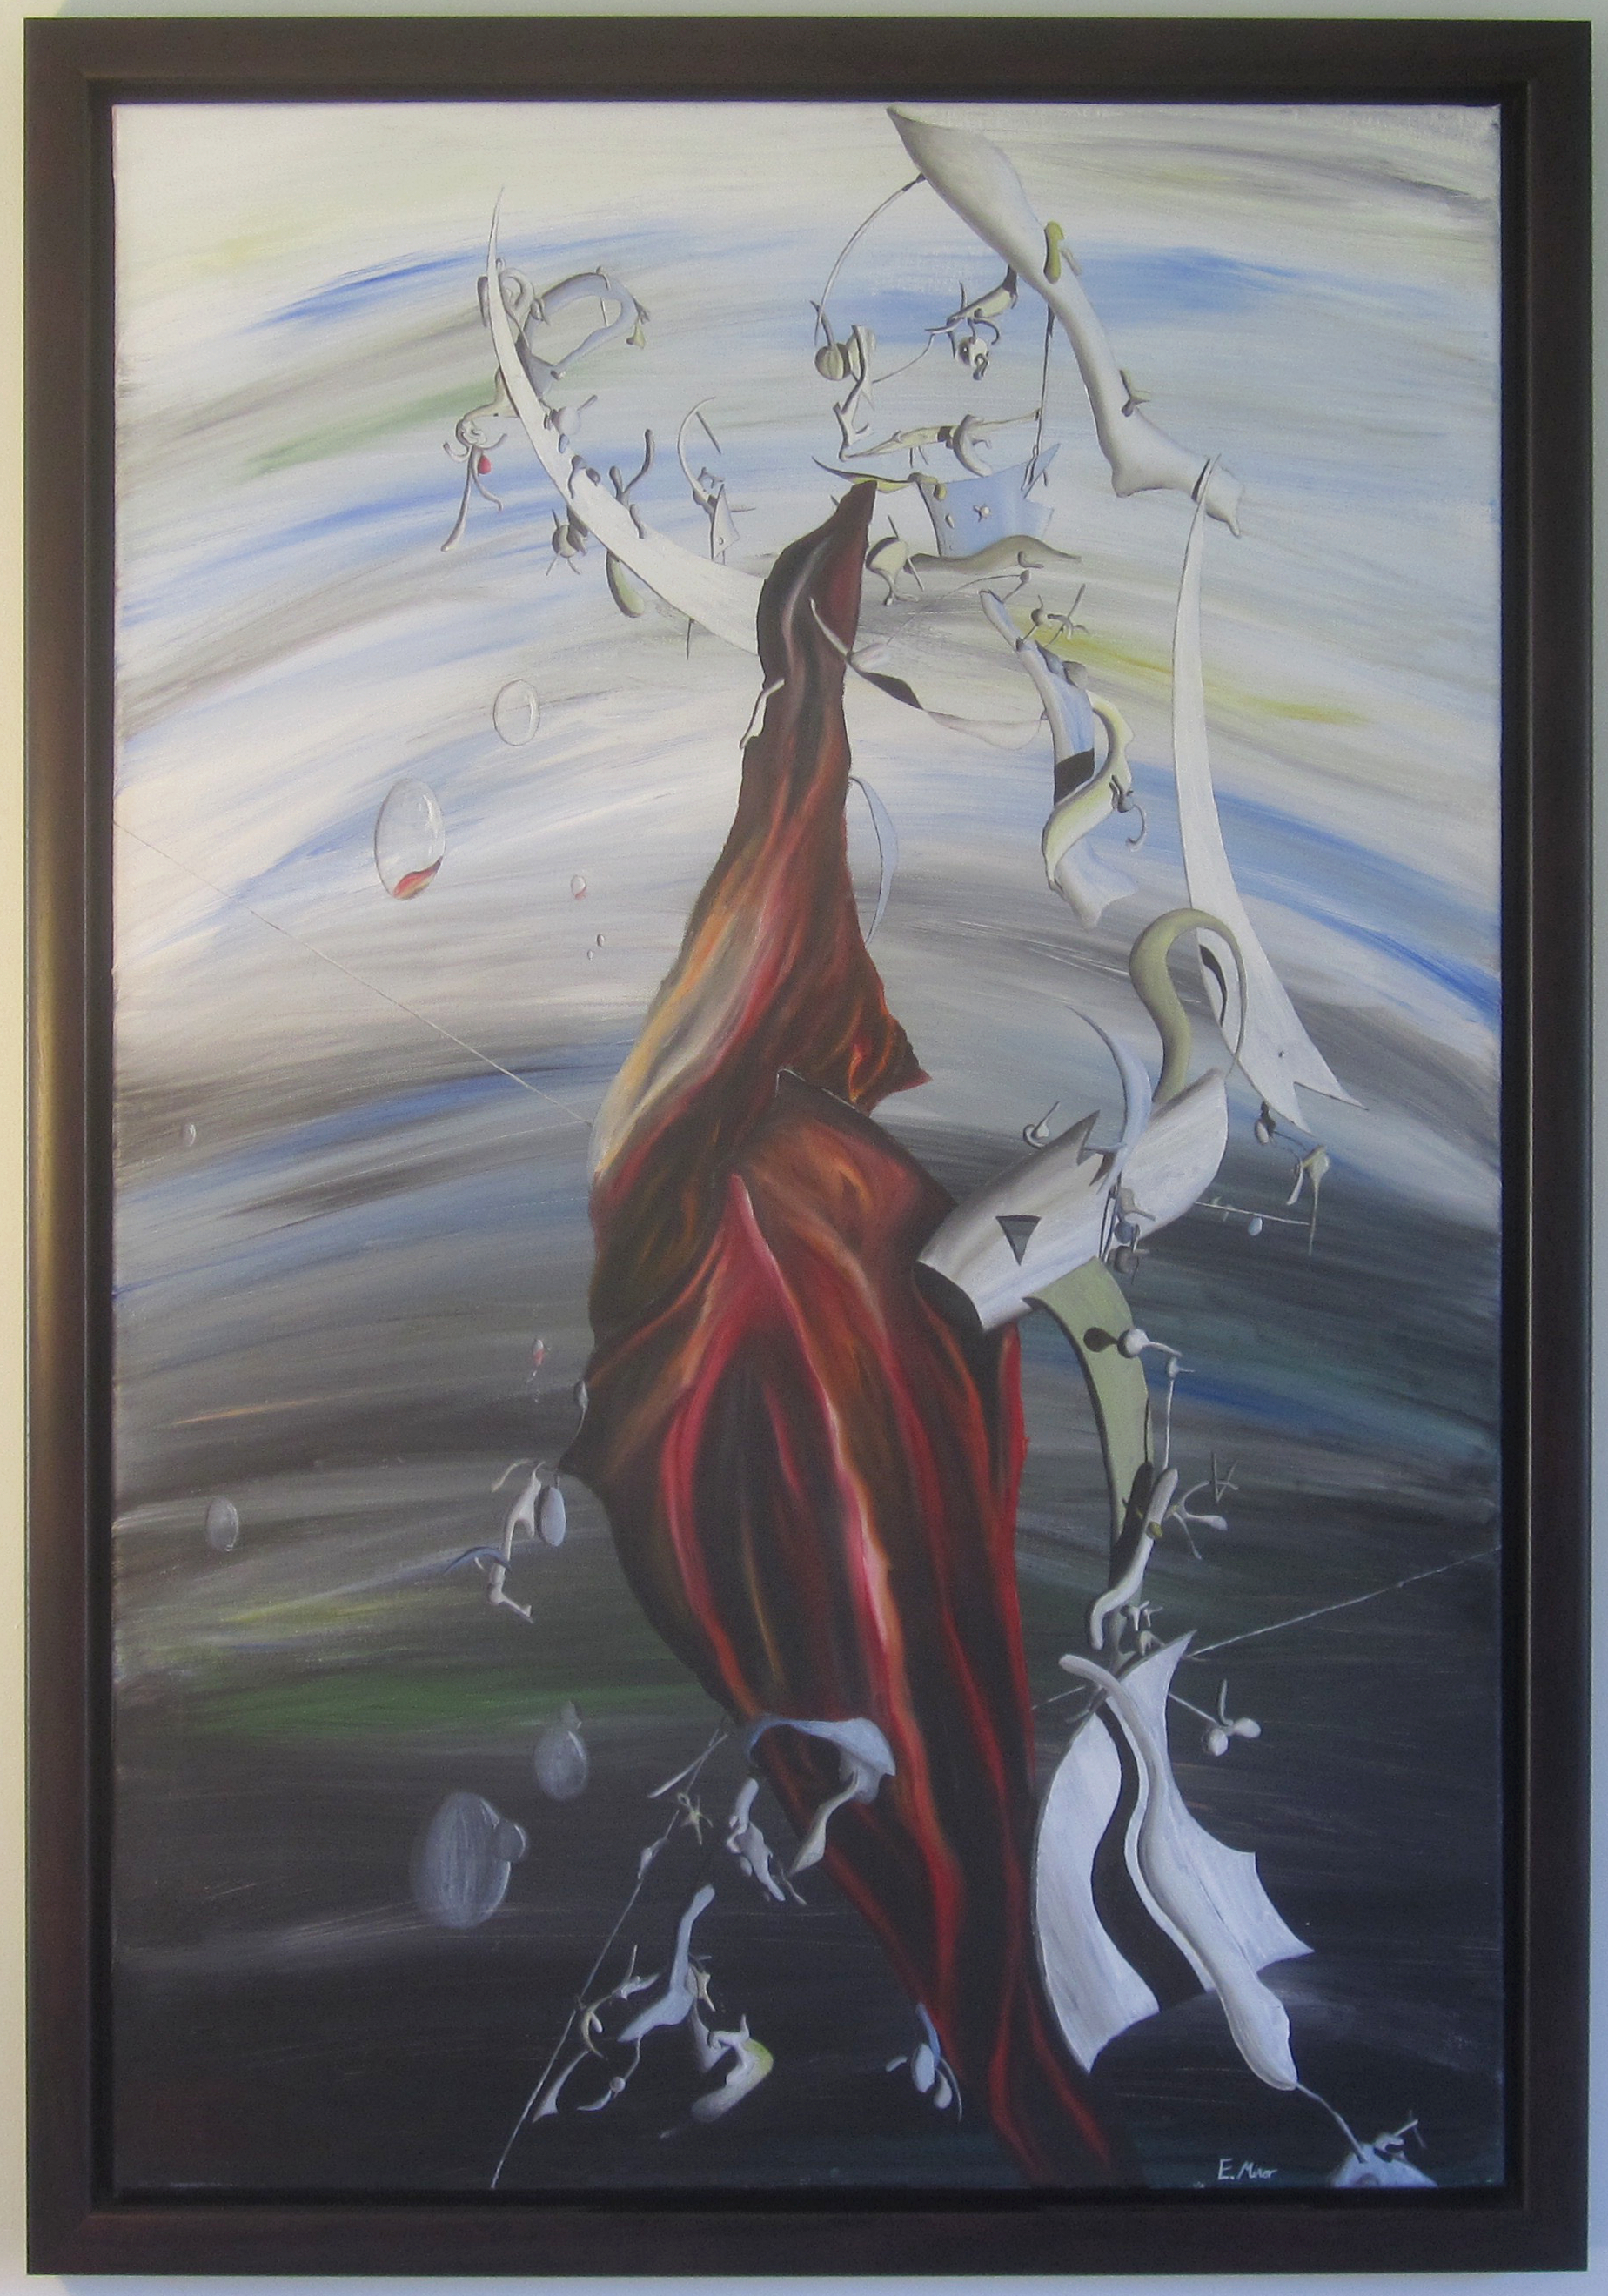 'Figure Wearing Red' is one of my earliest works, certainly very different to what I do now. At the time I painted it in 2008 I was really interested in Surrealism especially artists like Yves Tanguy, Max Ernst and Salvador Dali. It has been with me for many years, however the time has come for it to move on...it is making its way to Baltimore which is very exciting